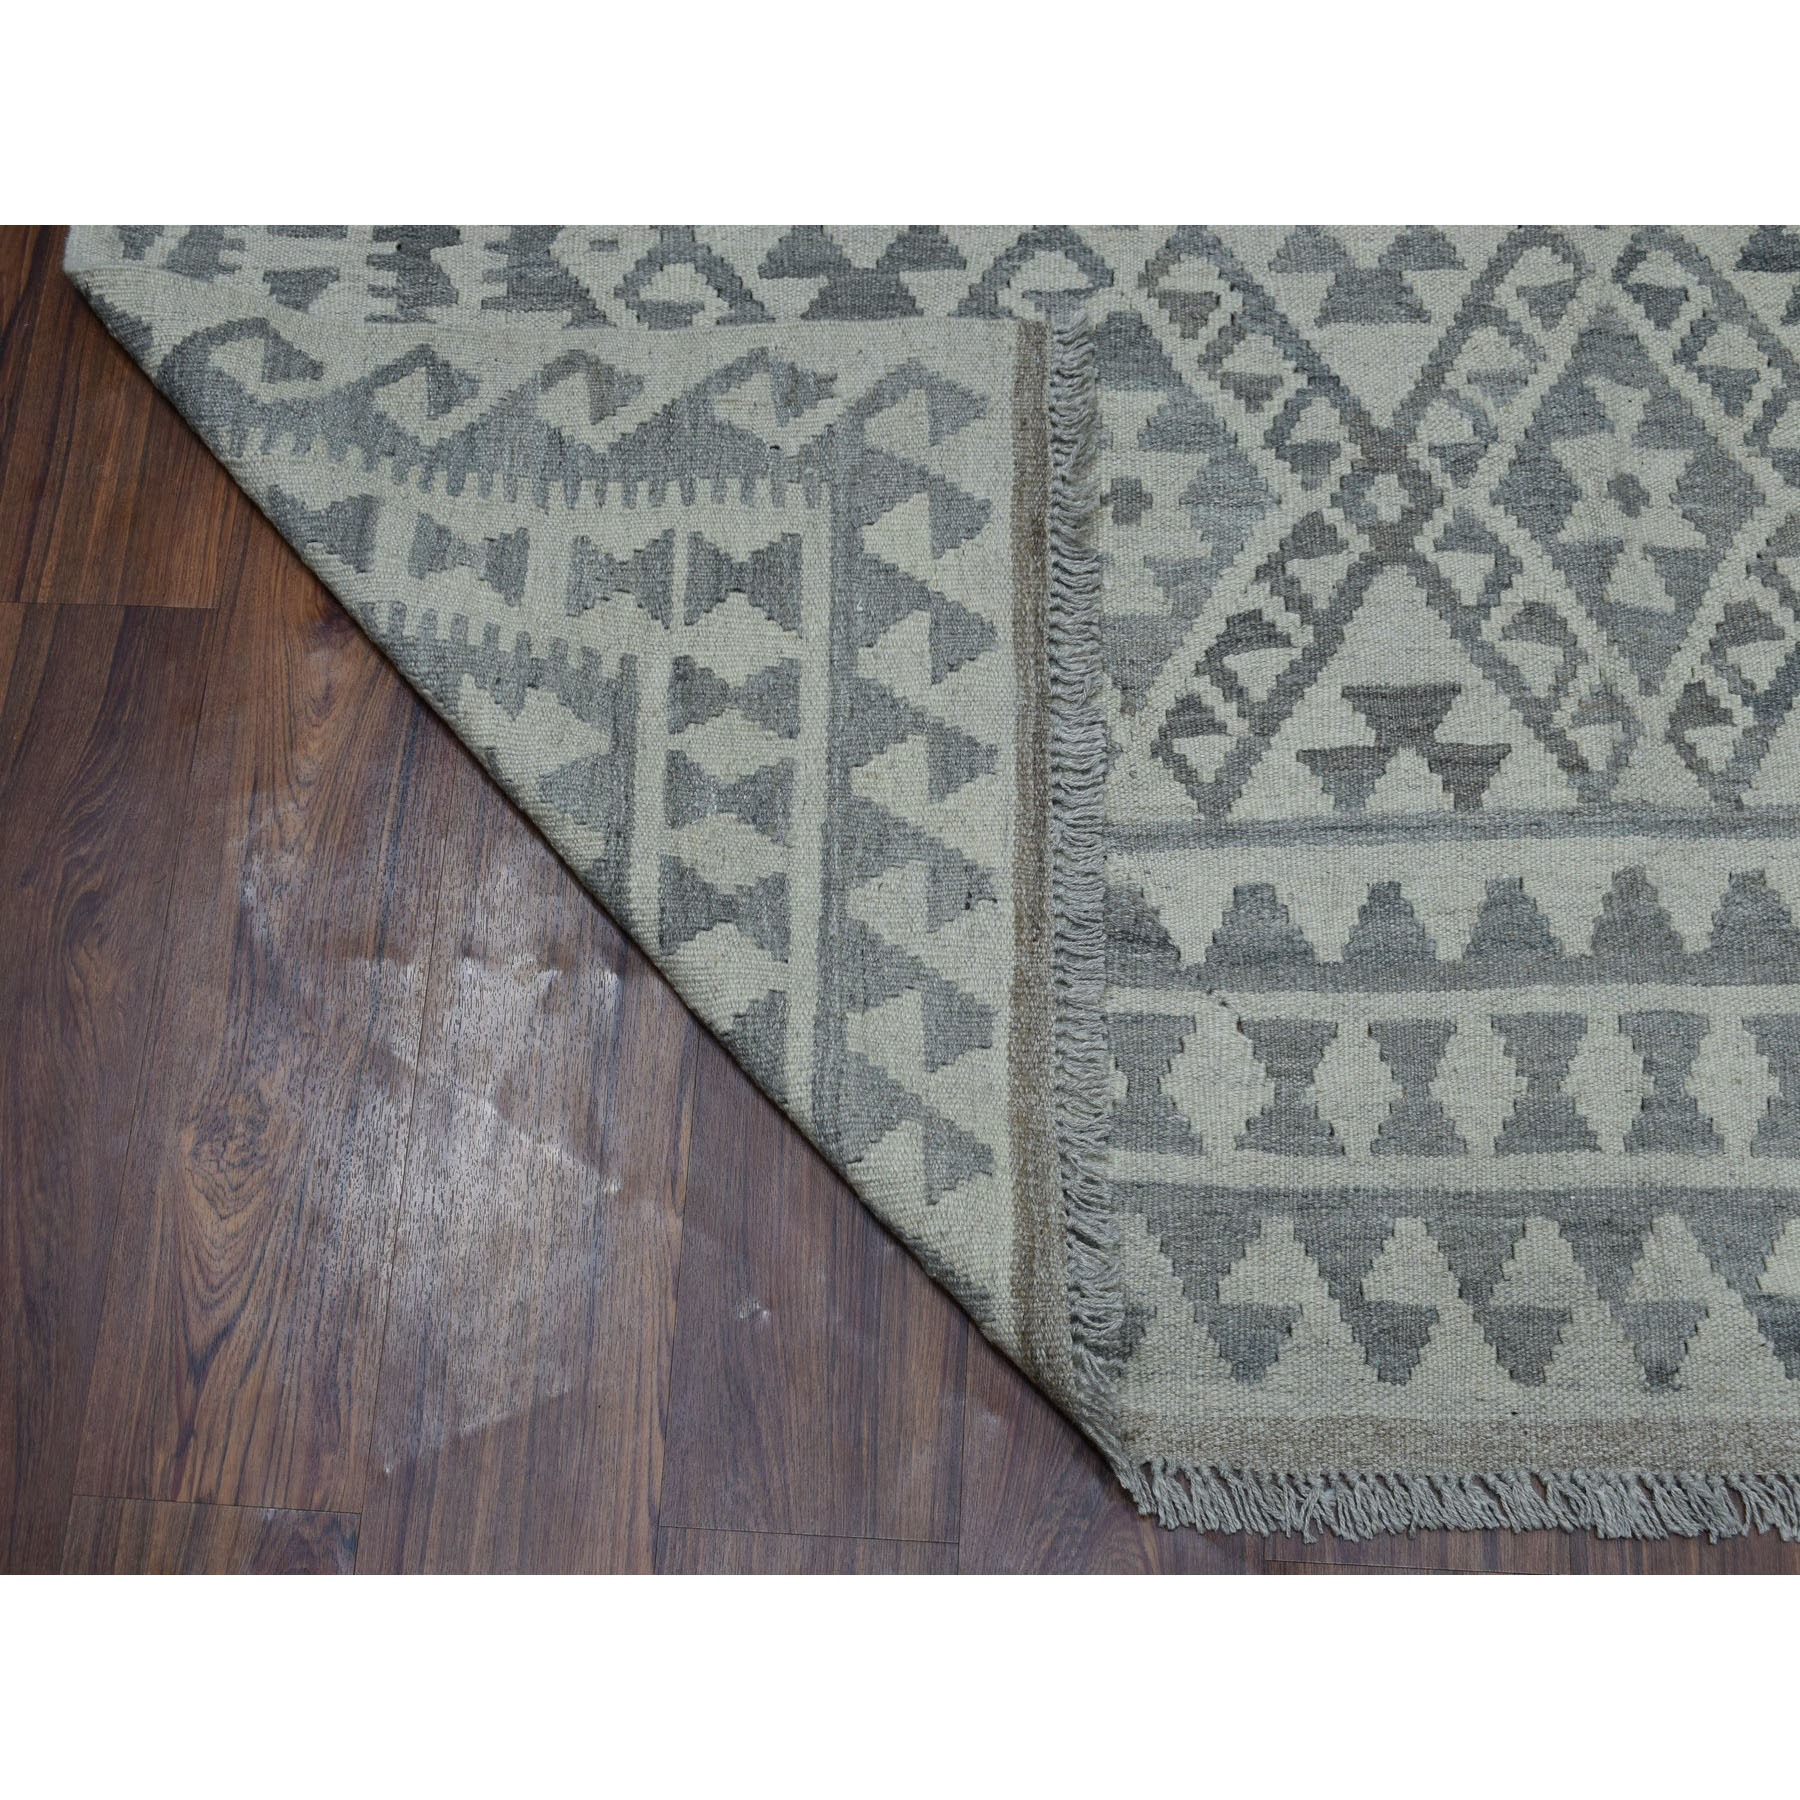 6-2 x7-9  Undyed Natural Wool Afghan Kilim Reversible Hand Woven Oriental Rug